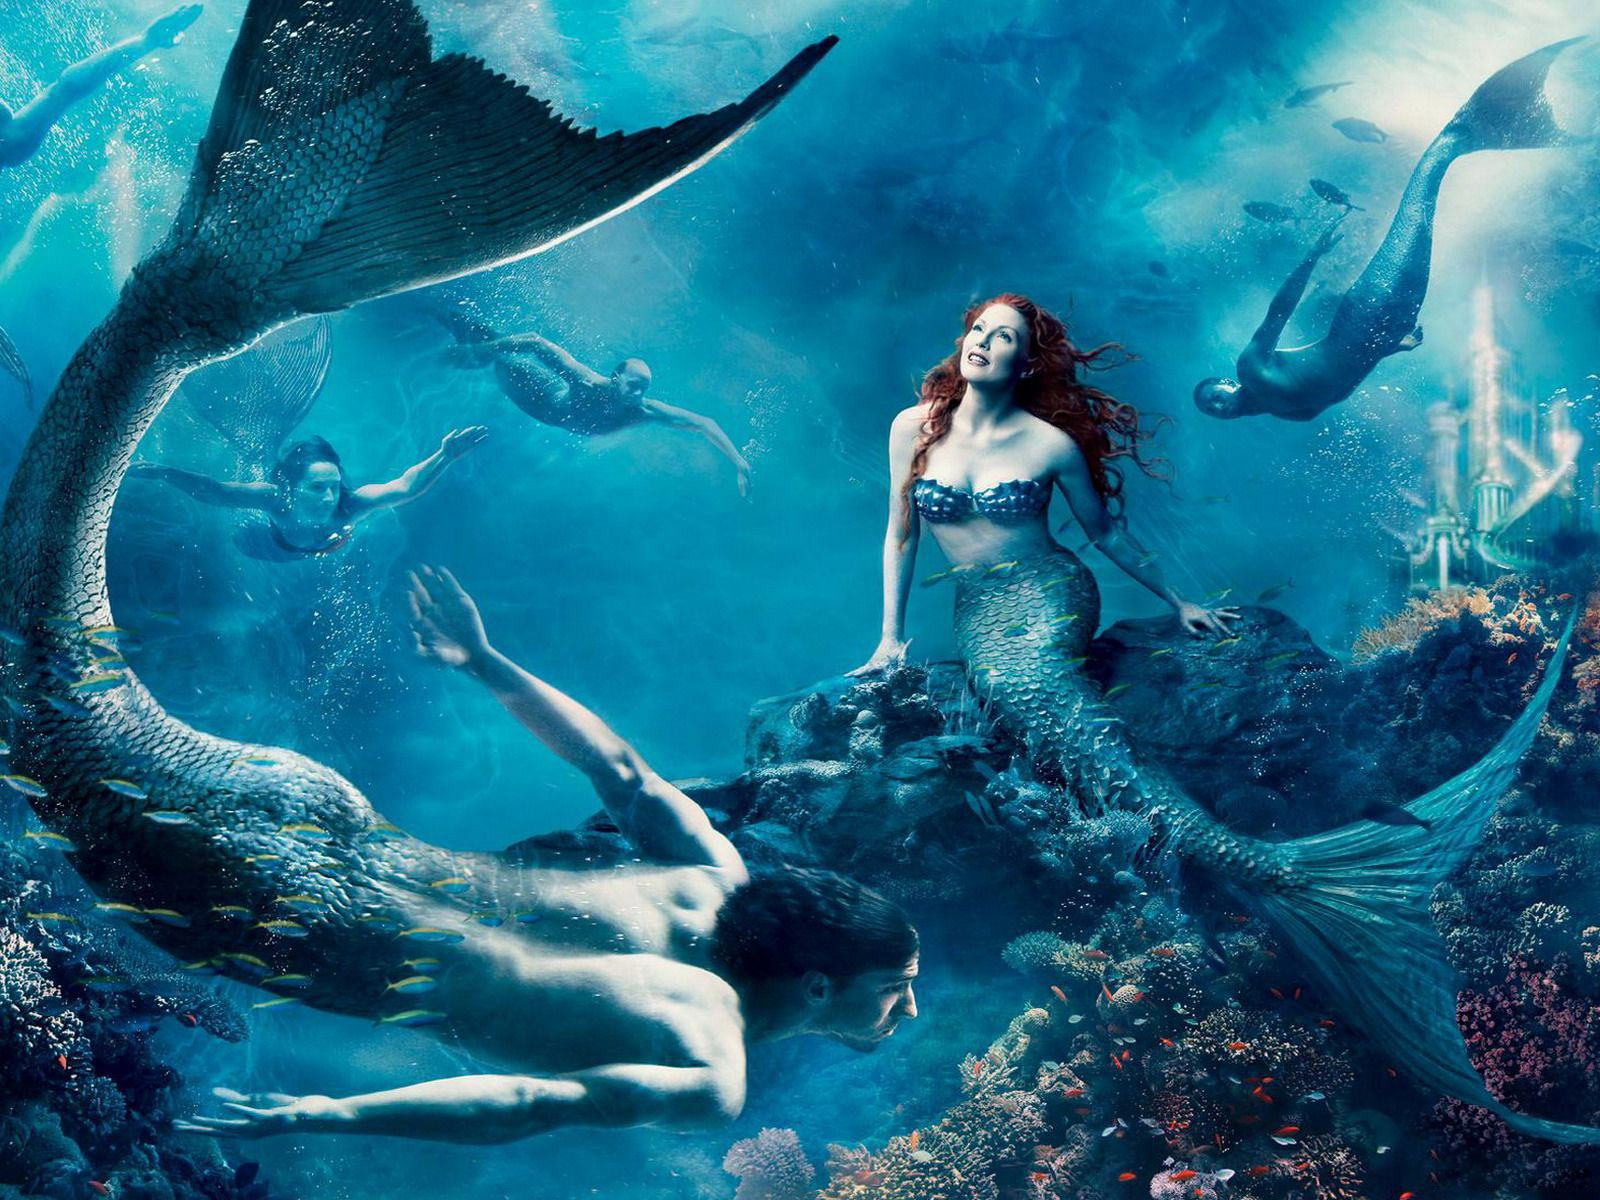 desktop wallpaper of fantasy art mermaid computer desktop 1600x1200